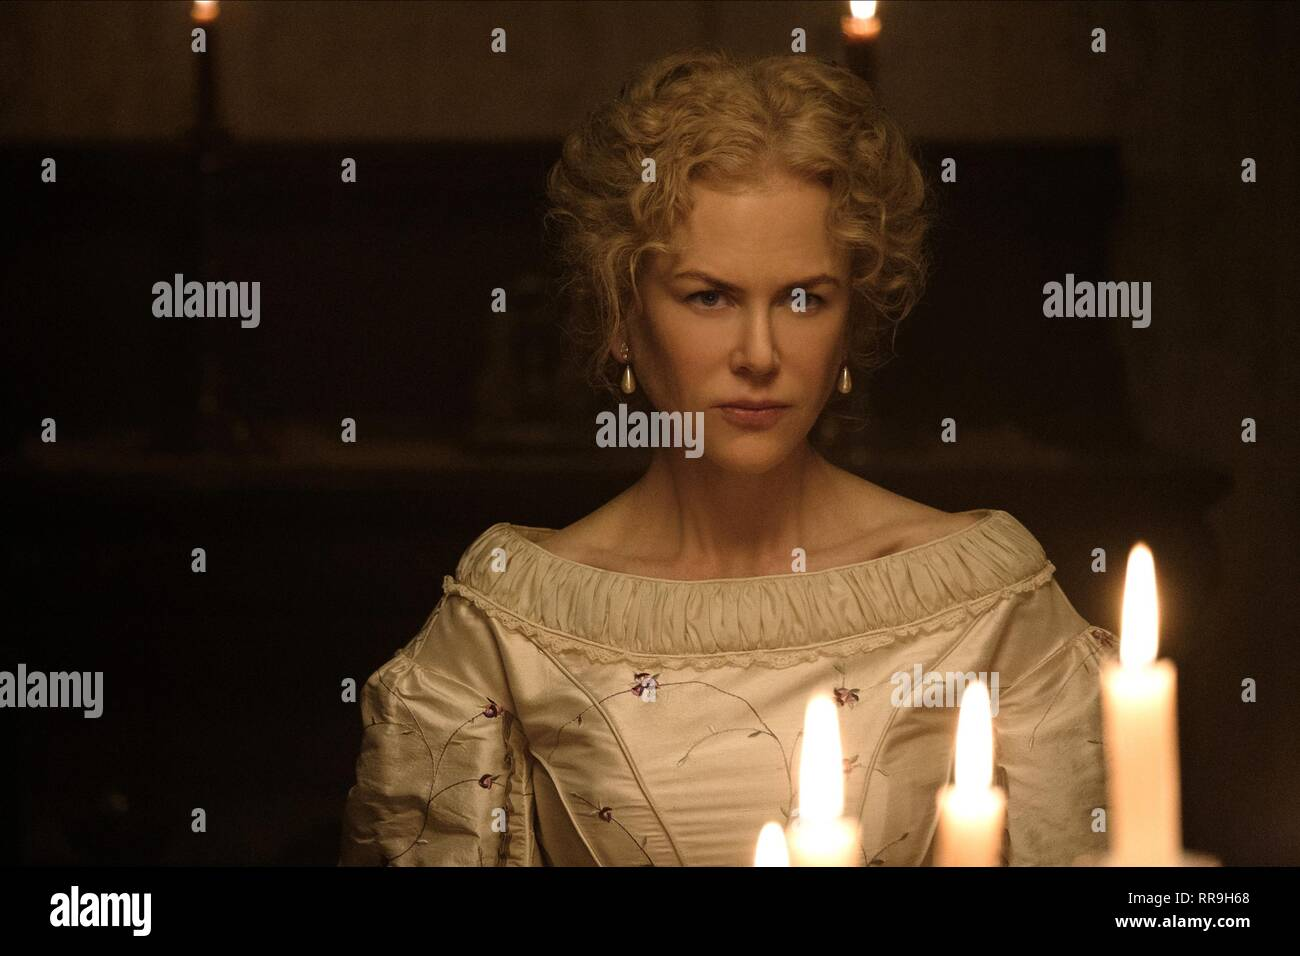 THE BEGUILED, NICOLE KIDMAN, 2017 - Stock Image